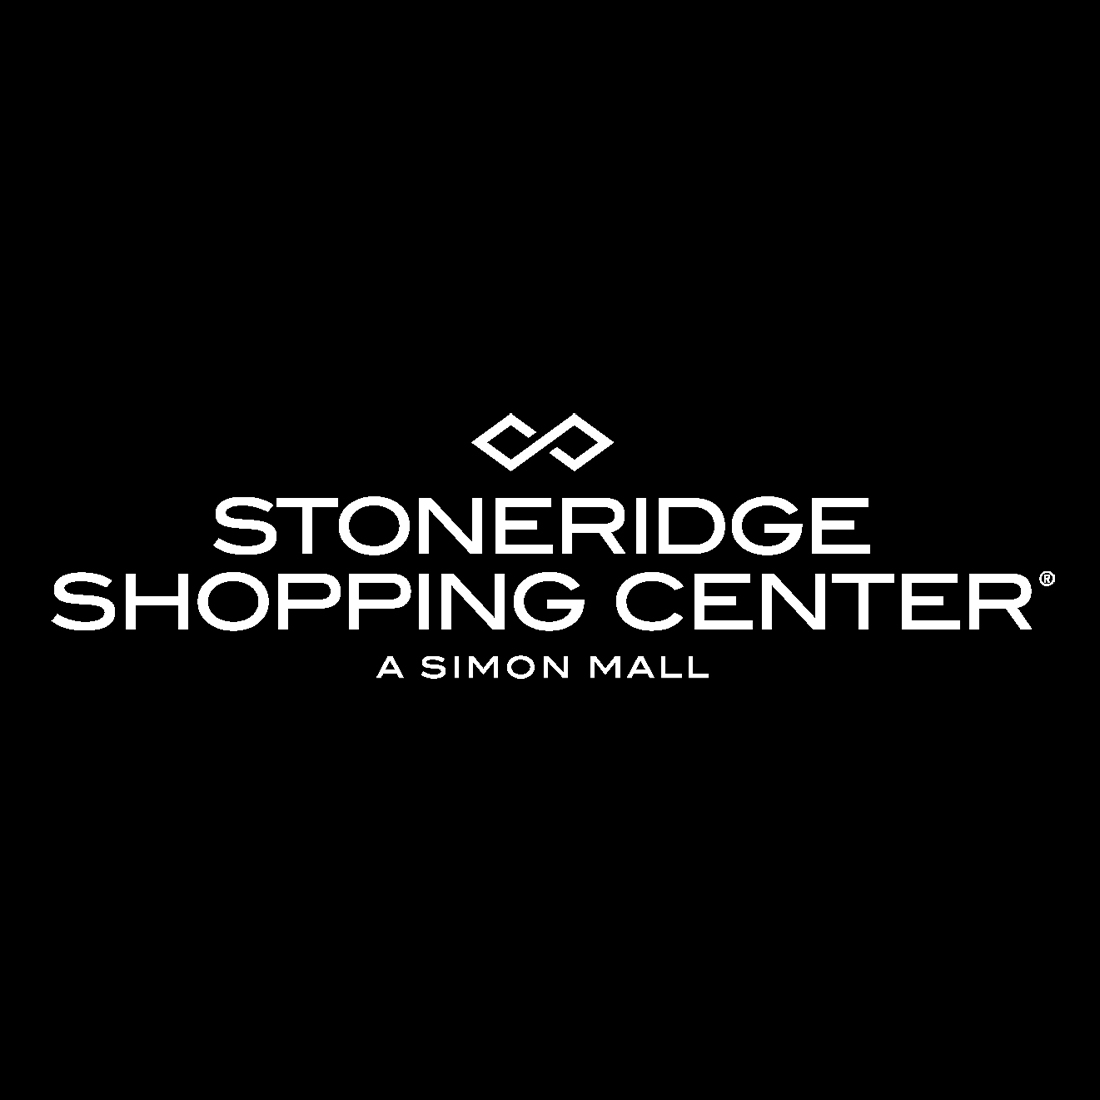 Stoneridge Shopping Center Coupons Near Me In Pleasanton